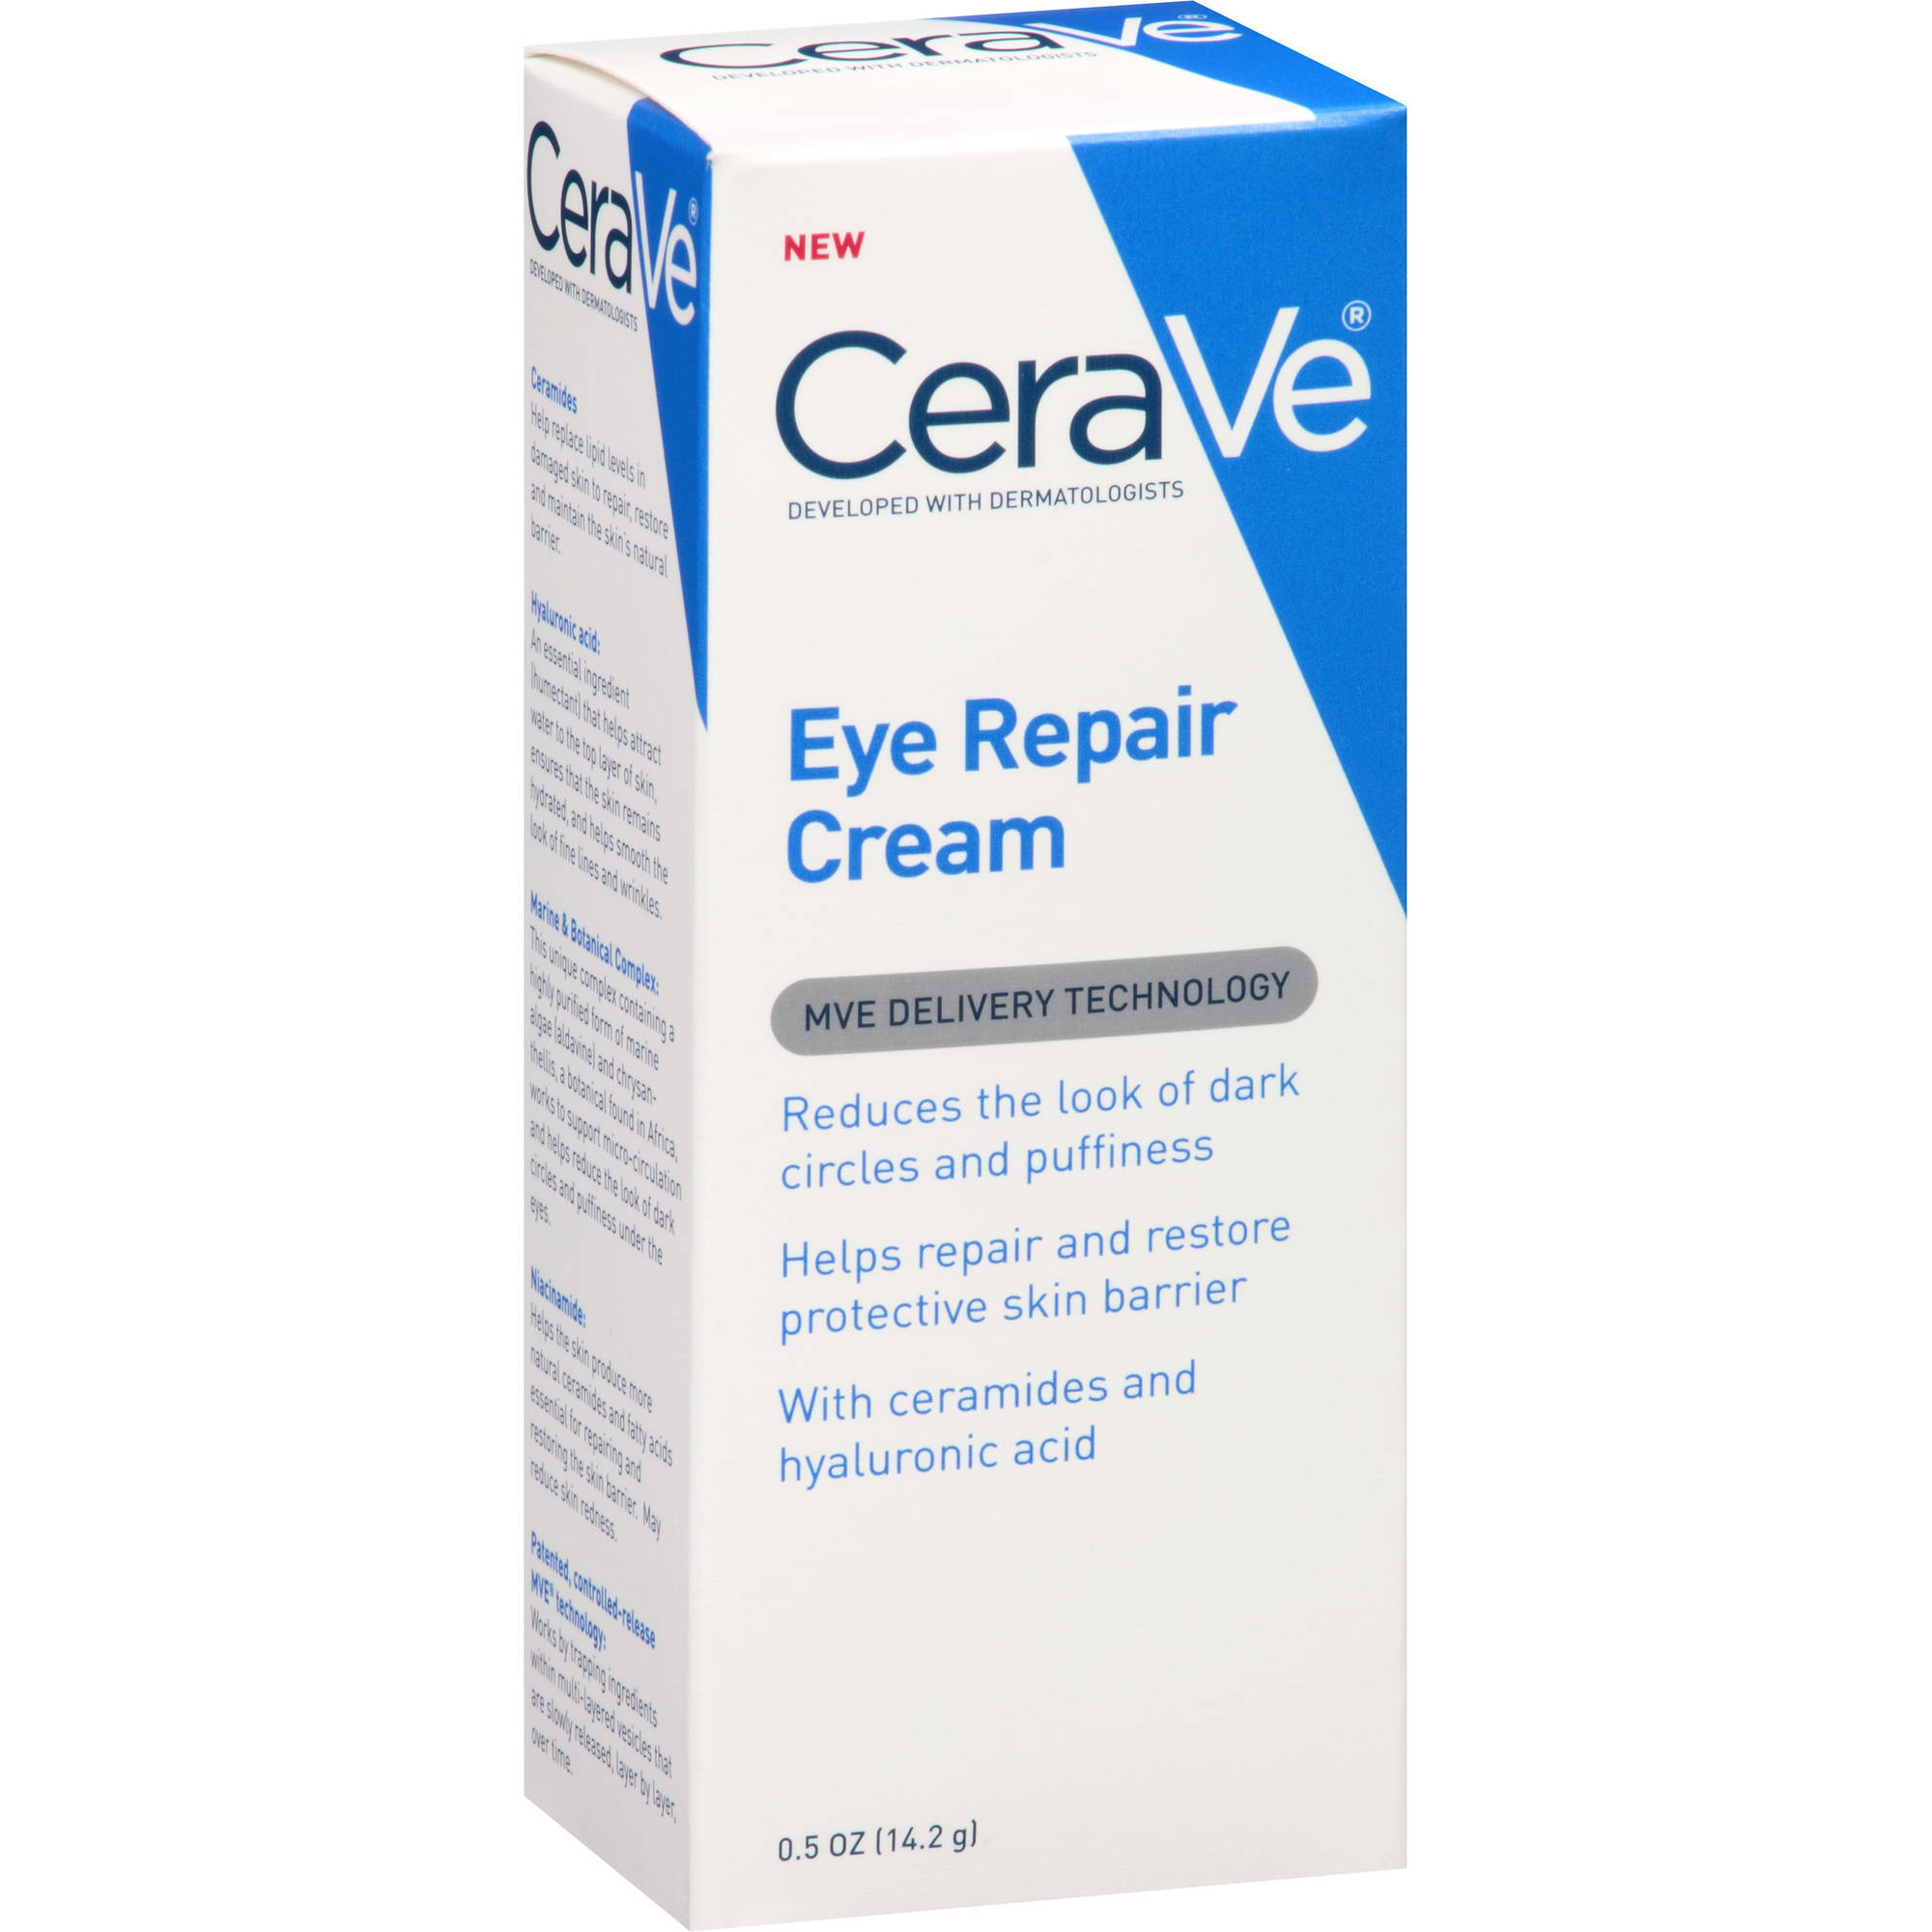 CeraVe Eye Repair Cream, 0.5 oz